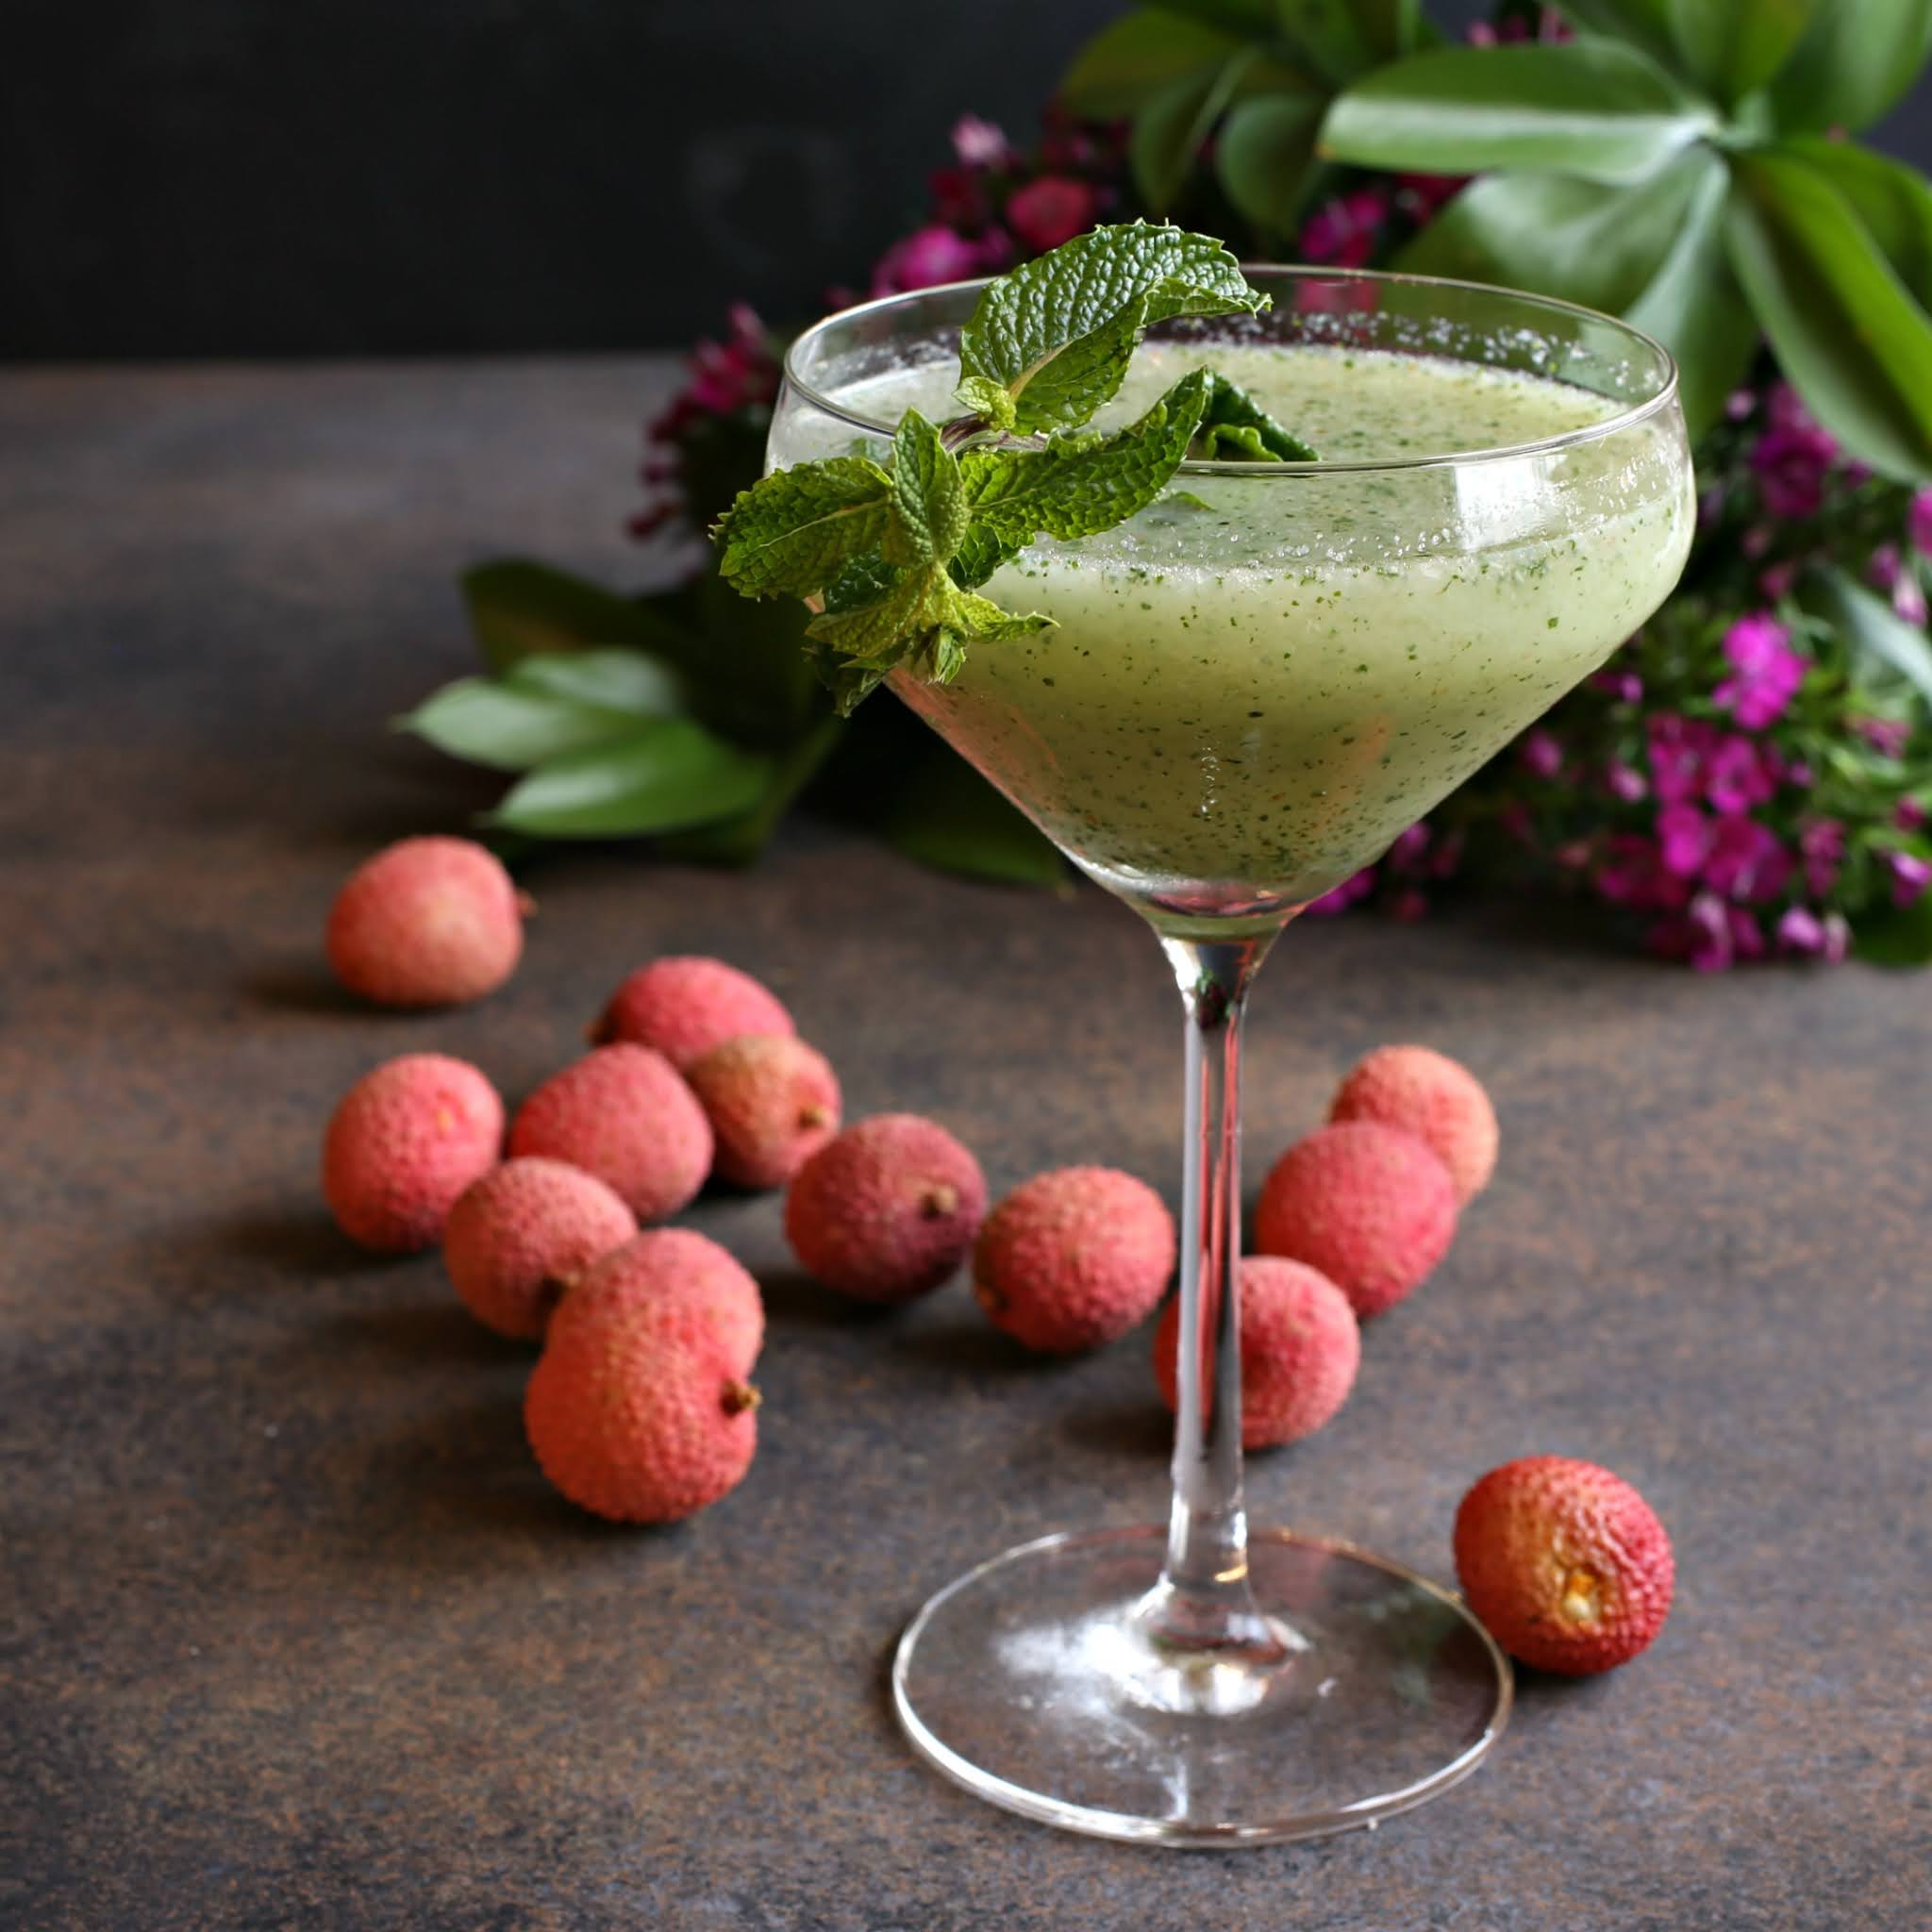 Recipe for a rum based cocktail flavored with fresh lychees, mint and elderflower.